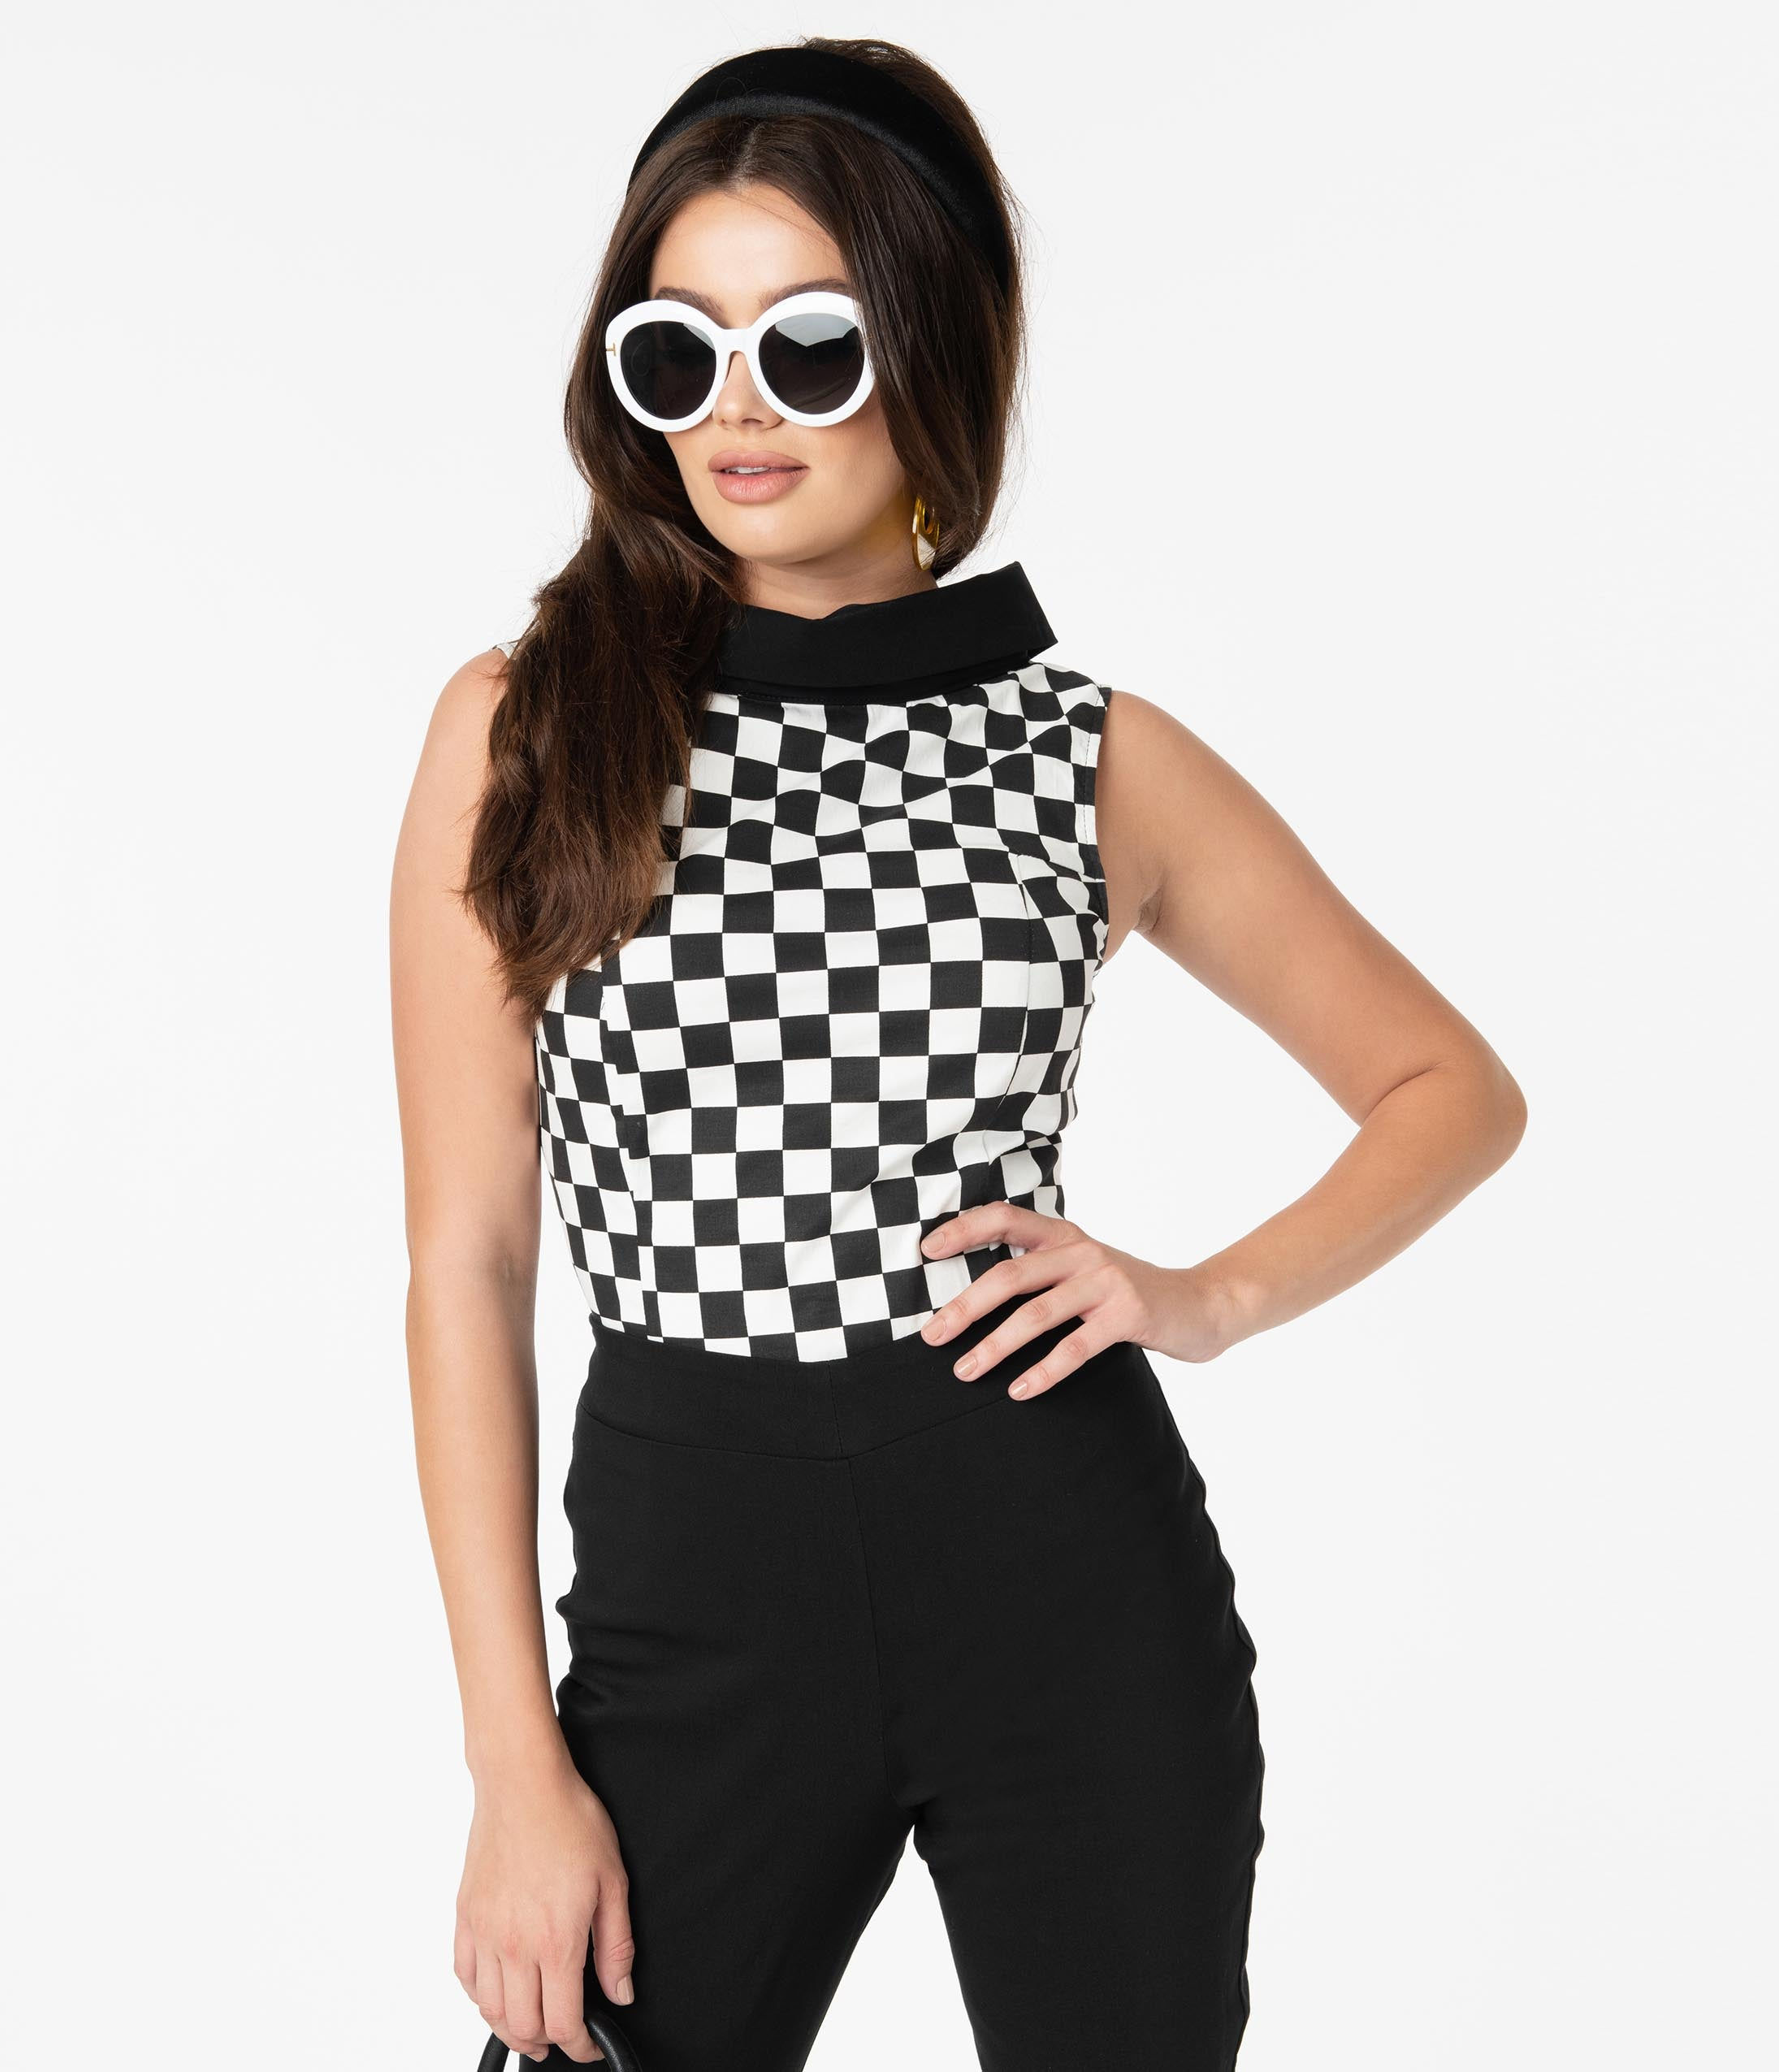 60s Shirts, T-shirts, Blouses, Hippie Shirts Smak Parlour Black  White Checkered Mod Top $48.00 AT vintagedancer.com